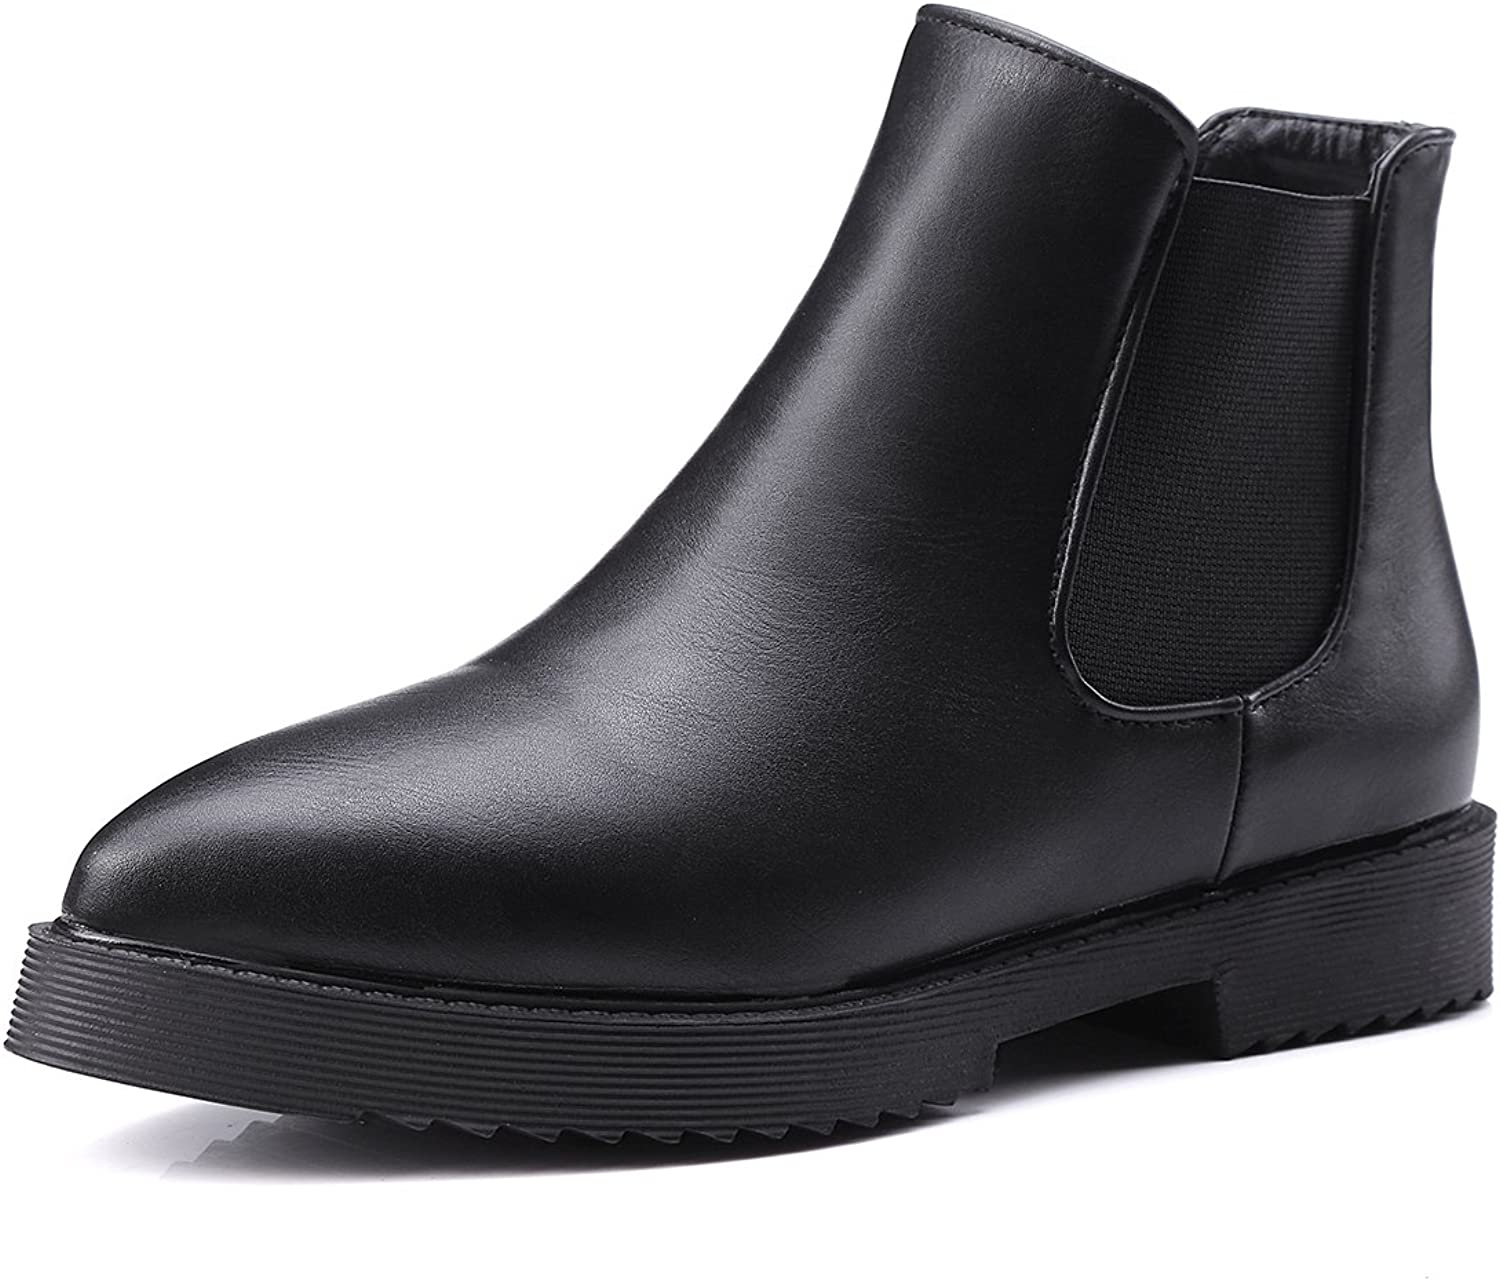 DoraTasia Black Pointed Toe Ankle High Women's Slip on Flat Boots